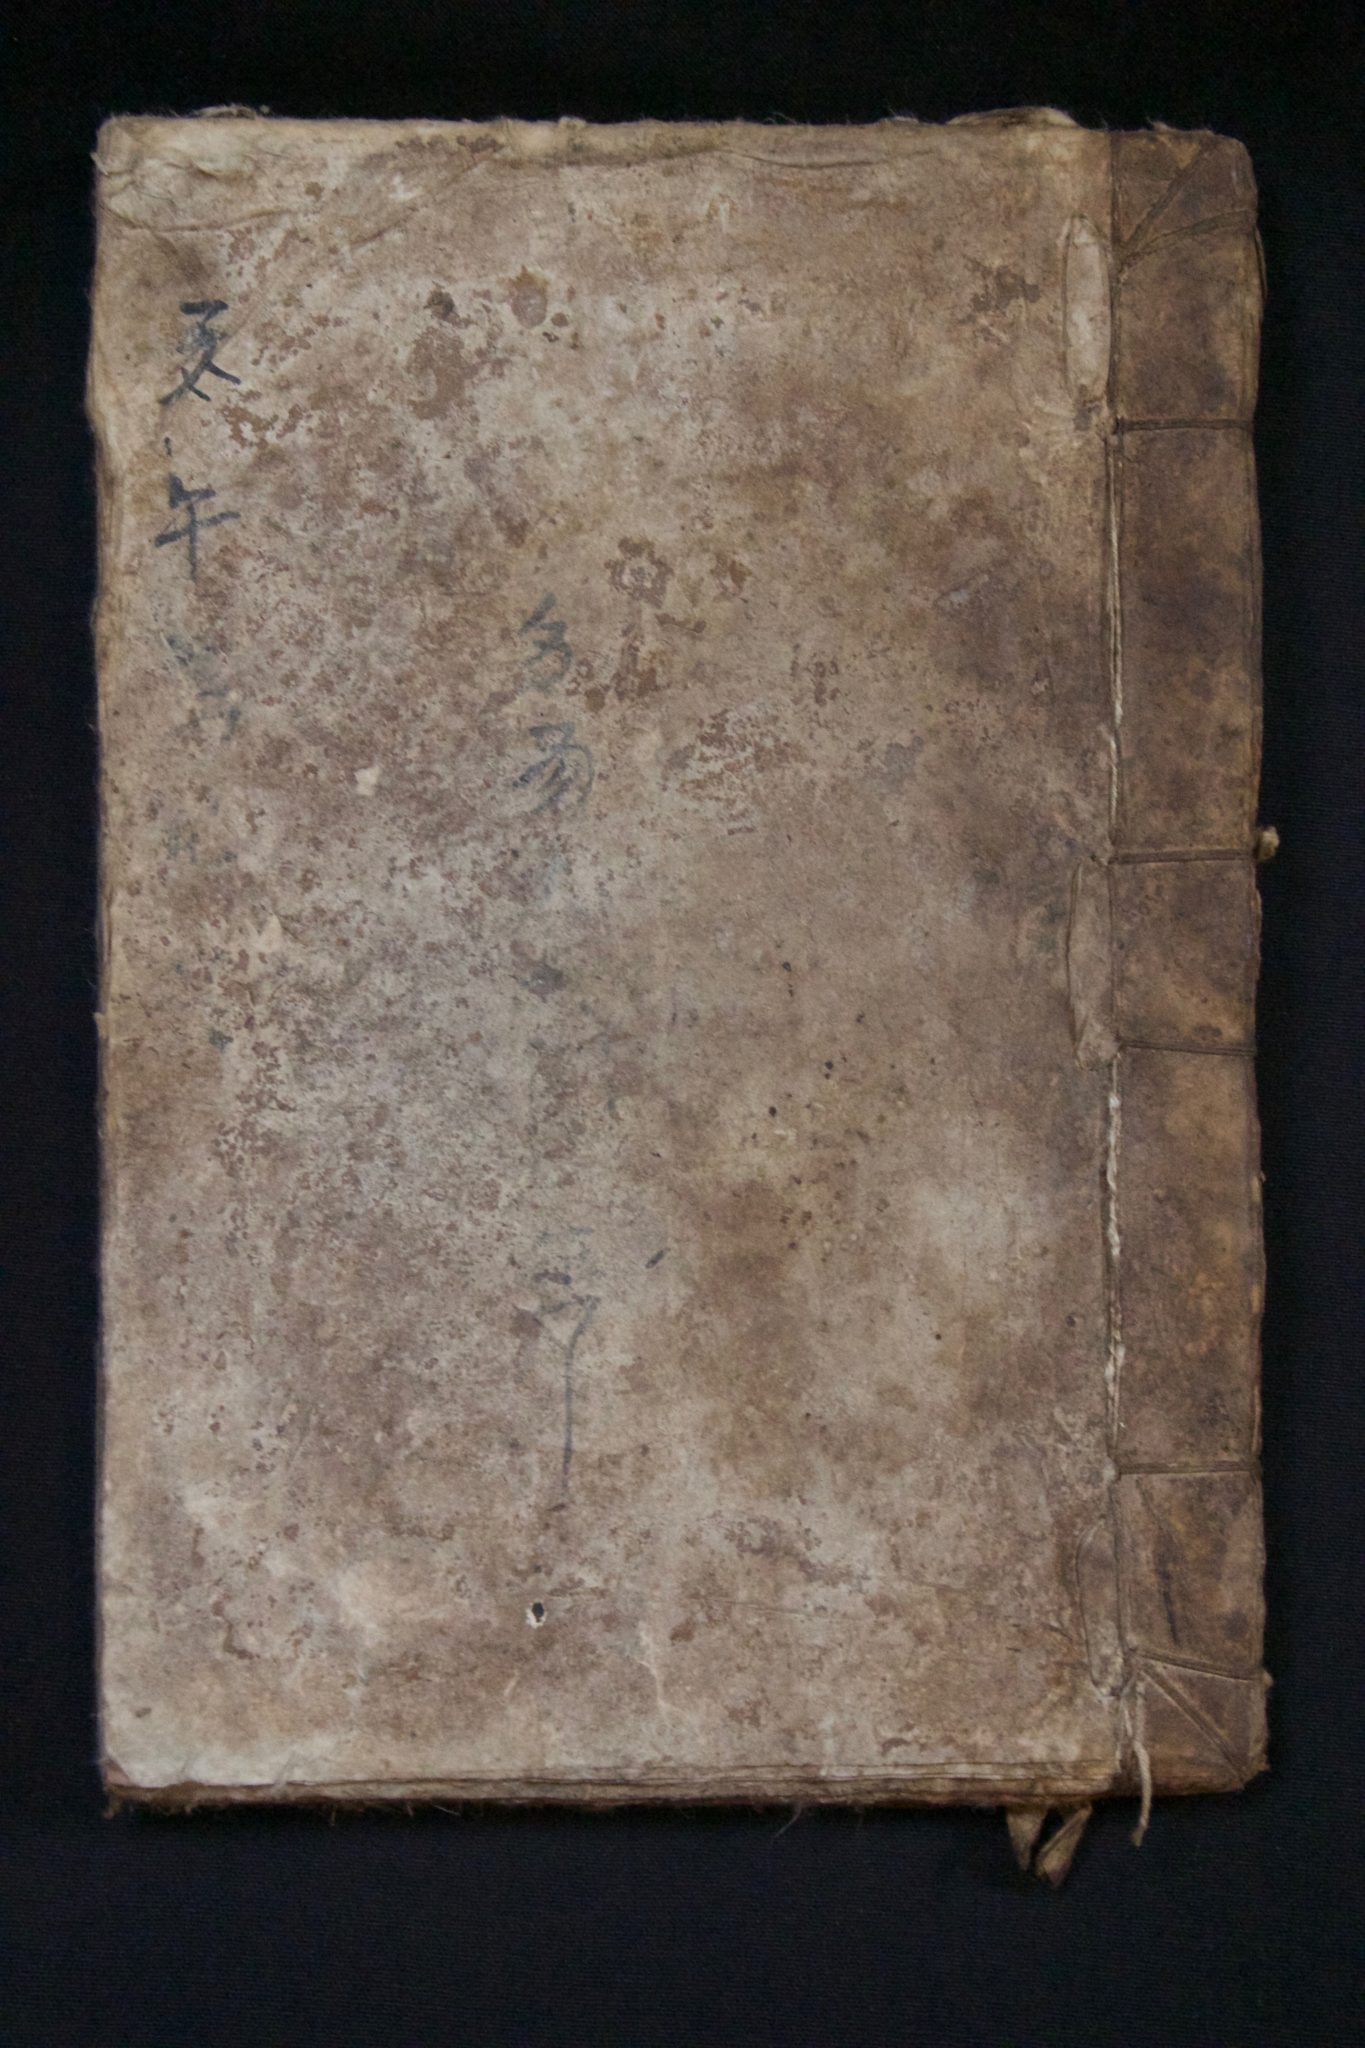 "Shaman's Personal Instructional Book, China, Yunnan Shui people, Early 20th c, Paper, ink, pigment, Scripted by the shaman, on handmade paper, to record all his knowledge and to instruct future shaman, 9"" x 6 ¼"" 1"", $750."